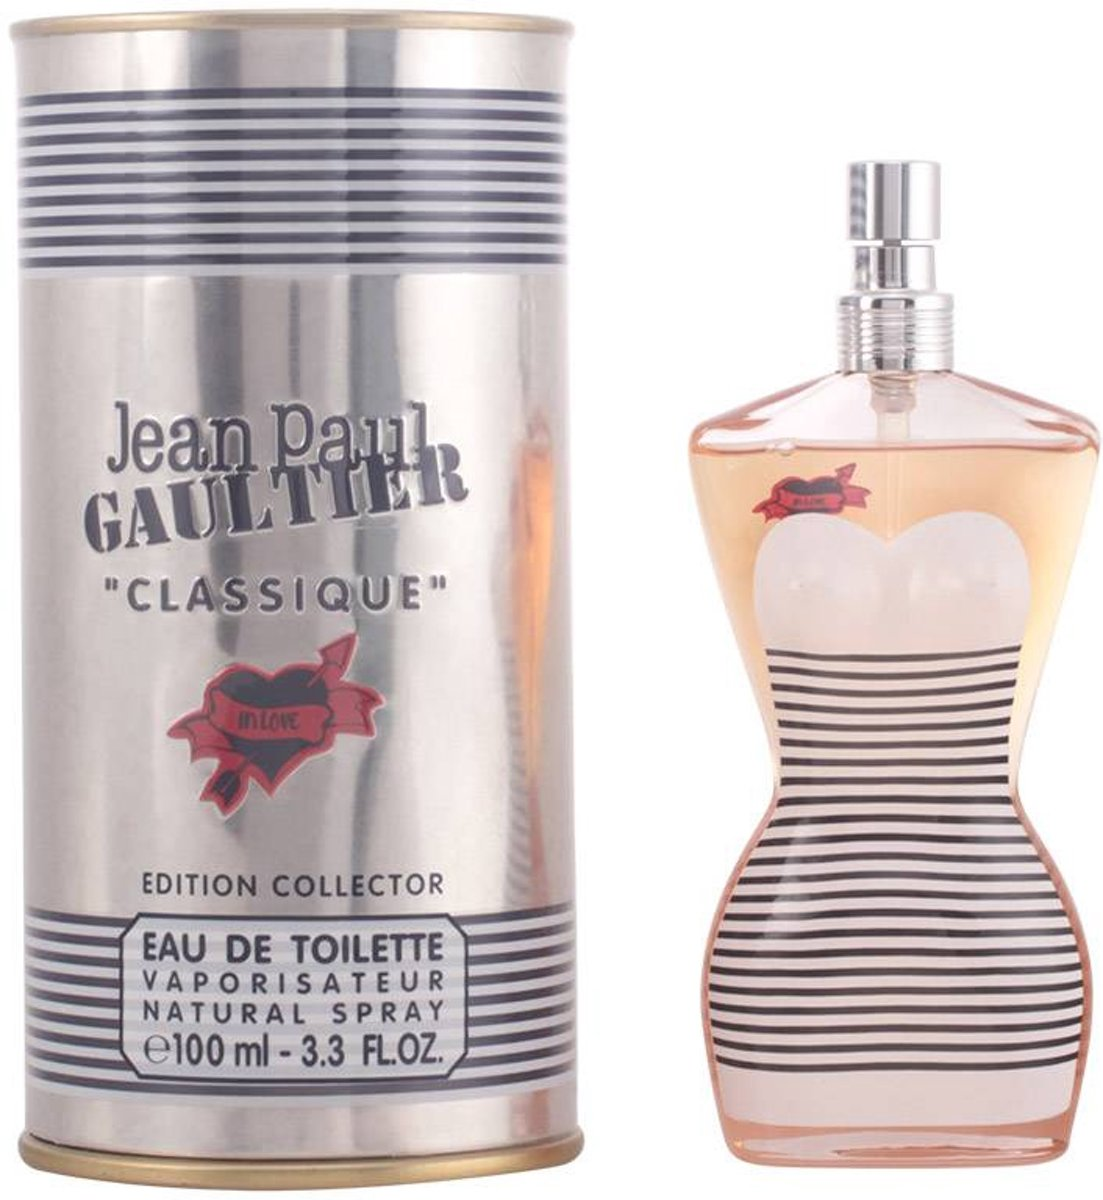 Jean Paul Gaultier Classique Edition Collector EDT 100 ml